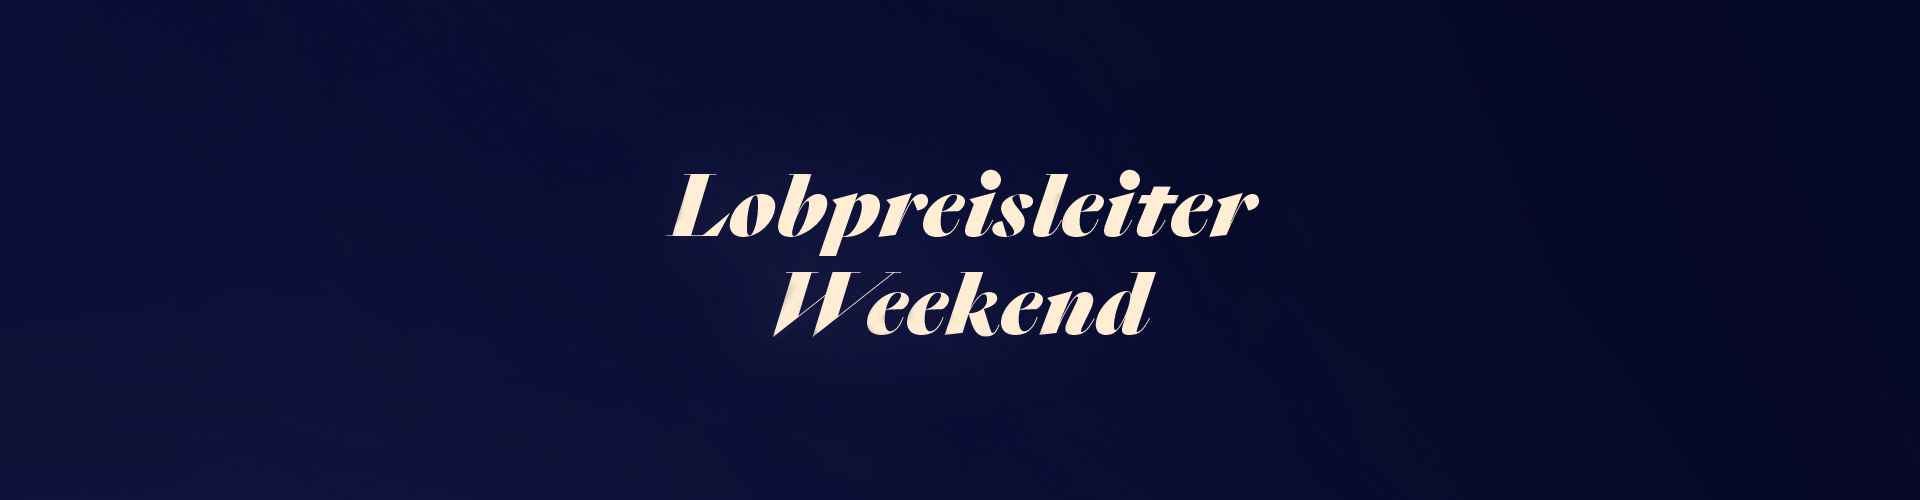 slider lobpreisleiter-weekend 2020